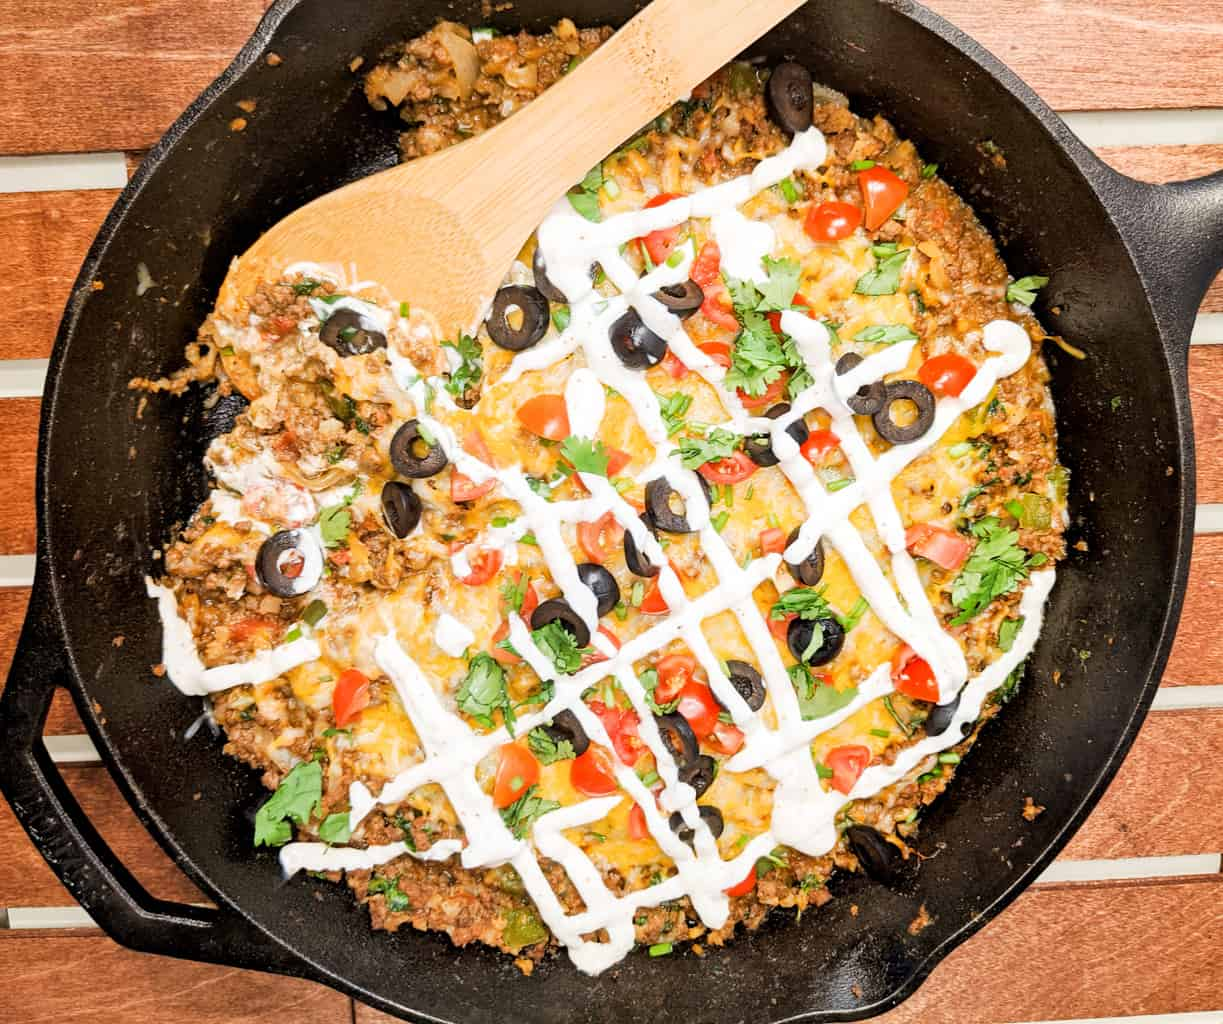 Keto Mexican skillet ready to serve on a wood table